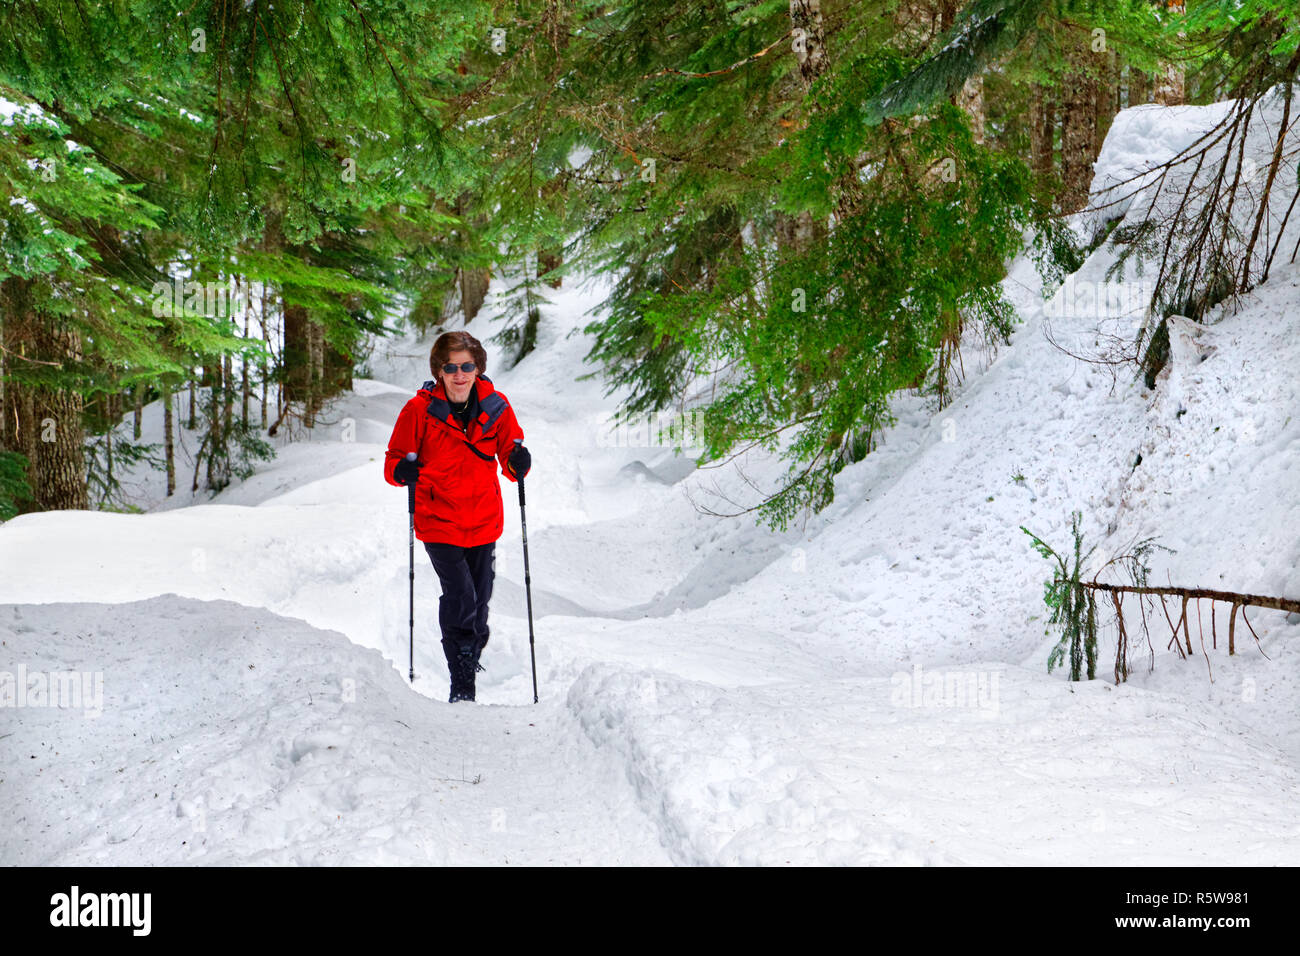 42,780.01123 woman hiker hiking and having fun exercising on a wide trail in snowy winter conifer forest, Mount Hood National Forest, Oregon USA - Stock Image